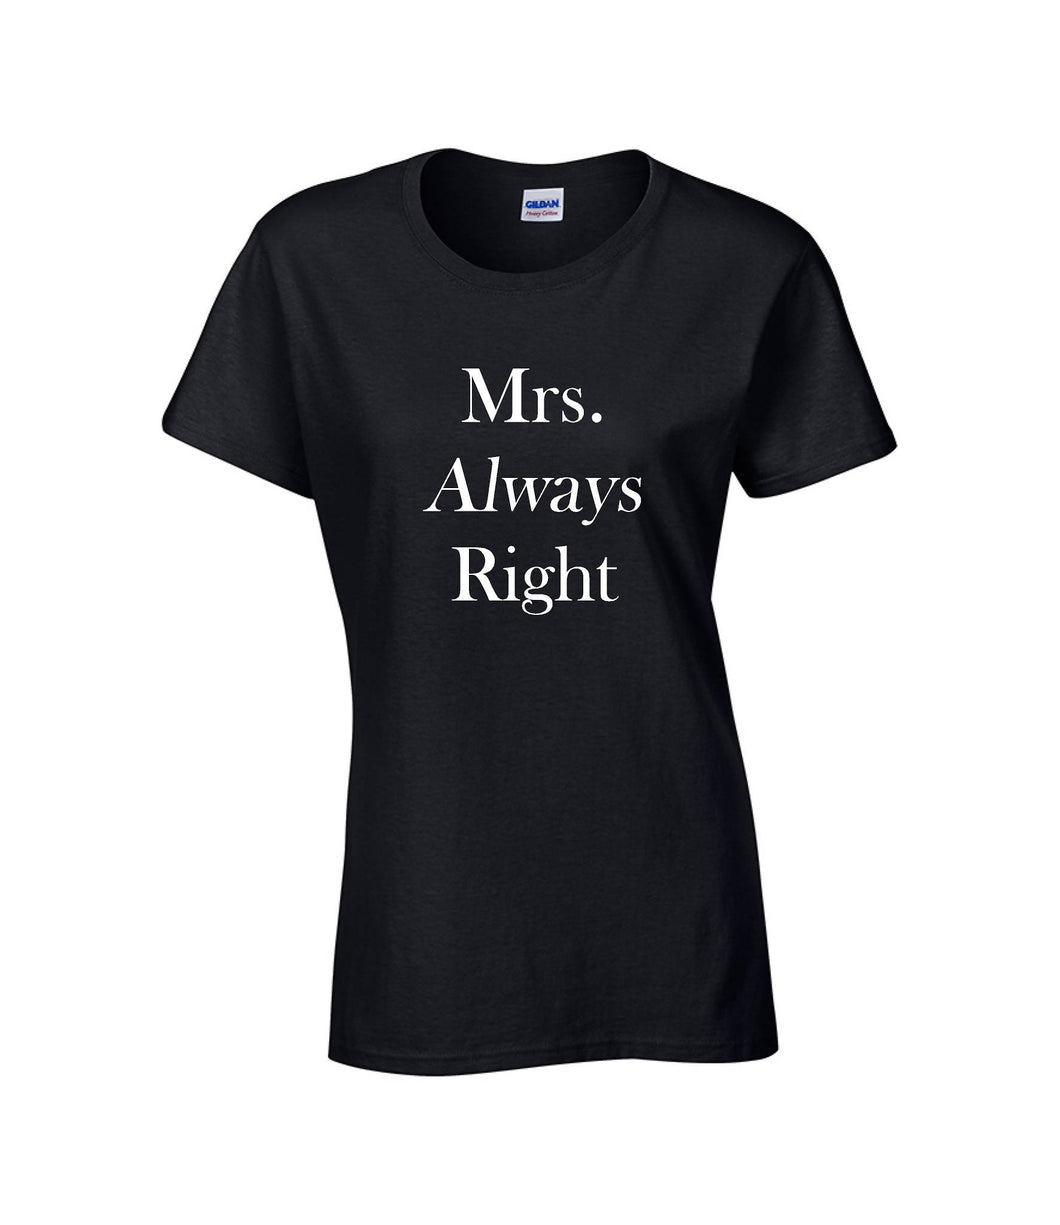 Ladies Short Sleeve T-shirt Mrs Always Right